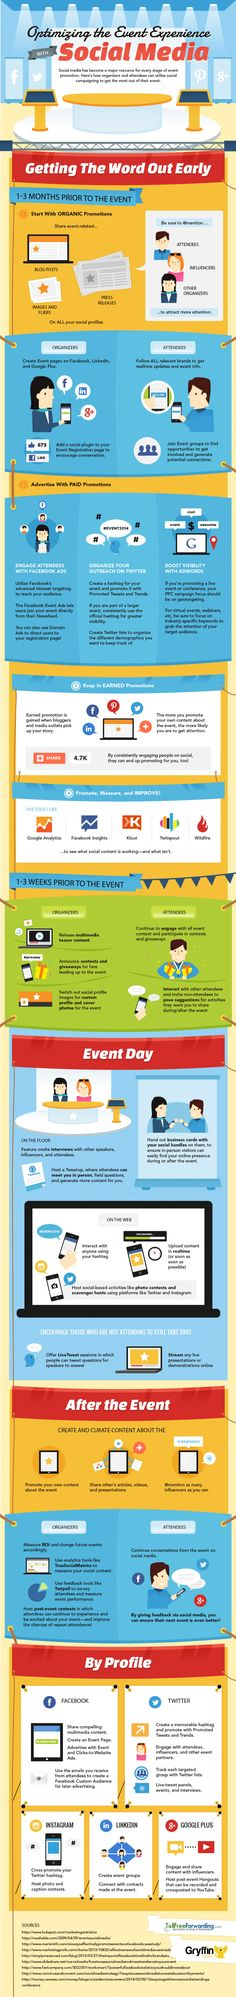 #Infographic: How to use #SocialMedia to promote your next event.